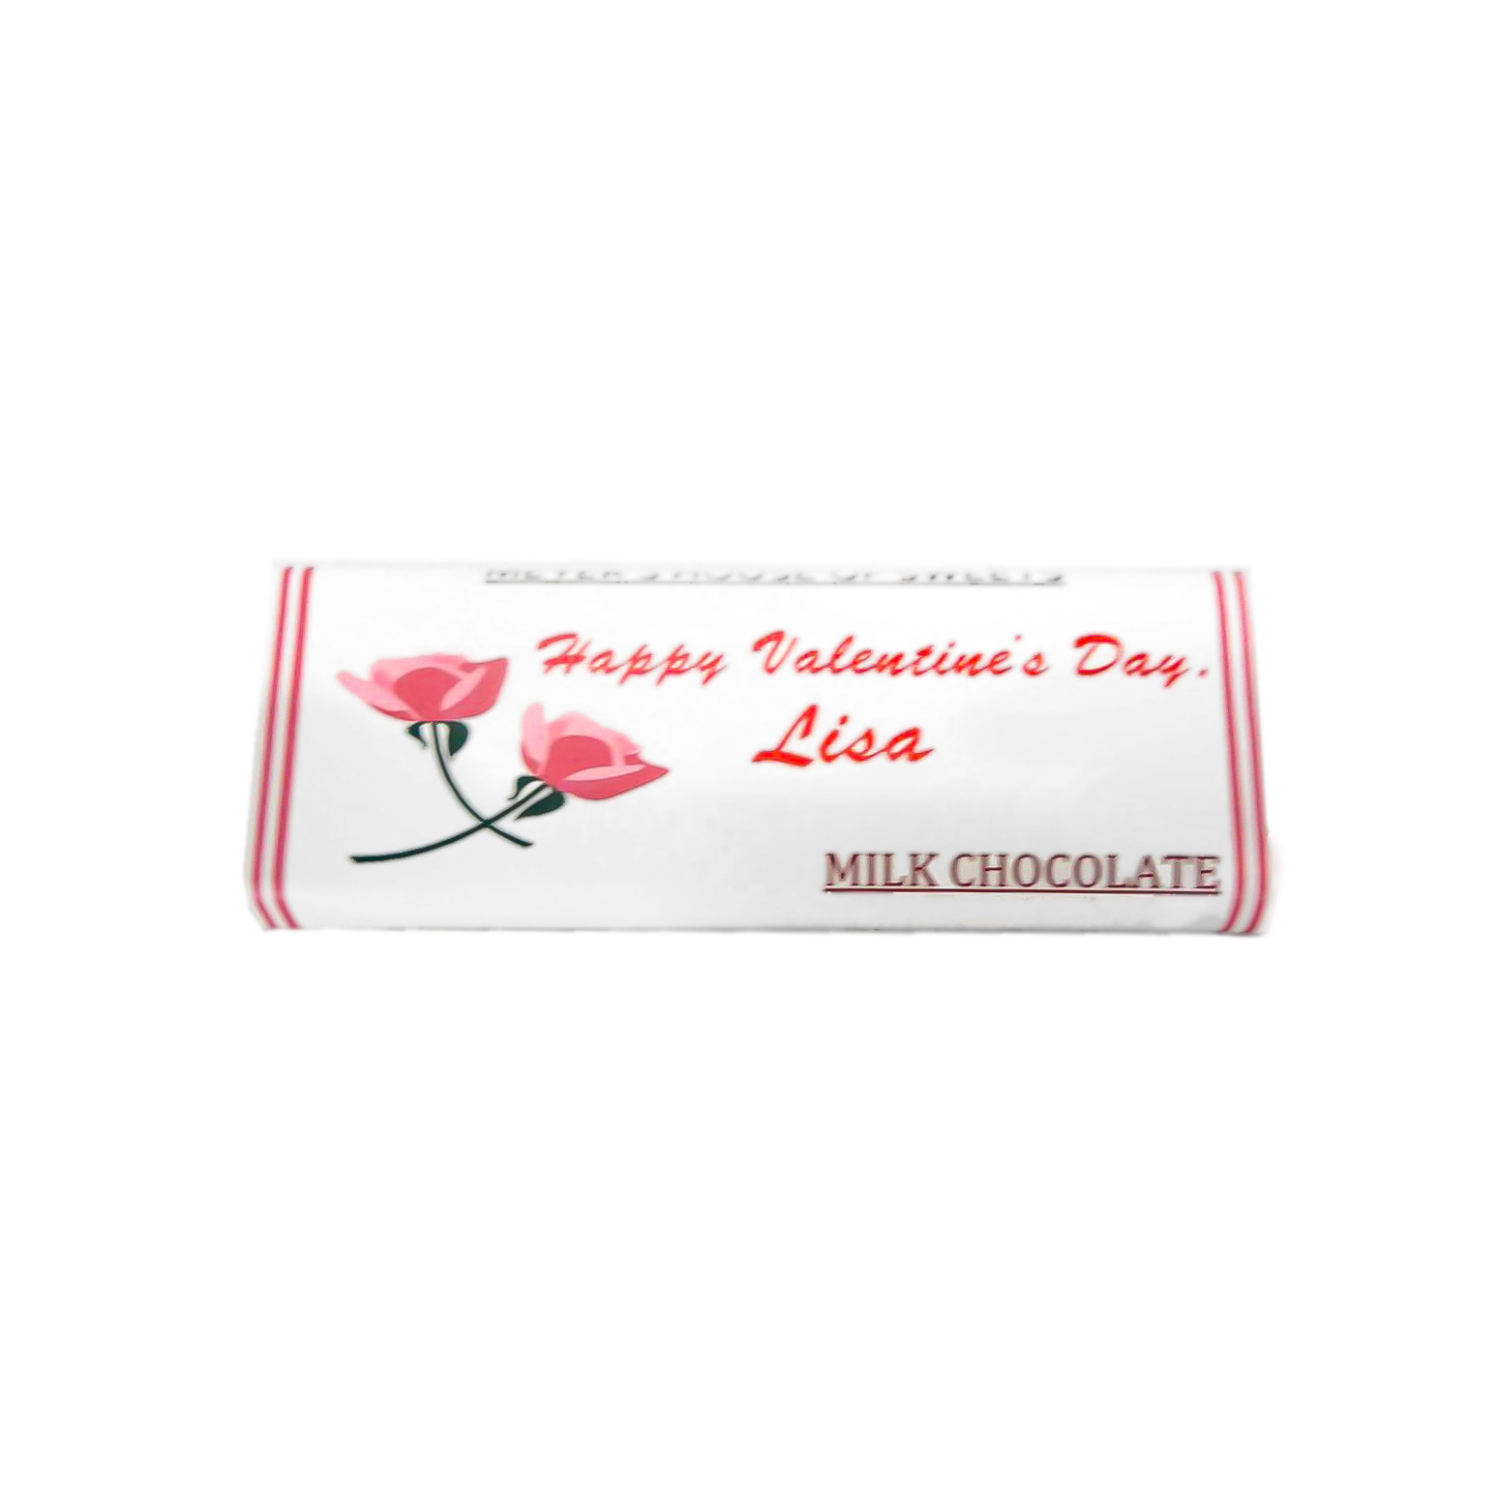 personalized valentine's candy bar